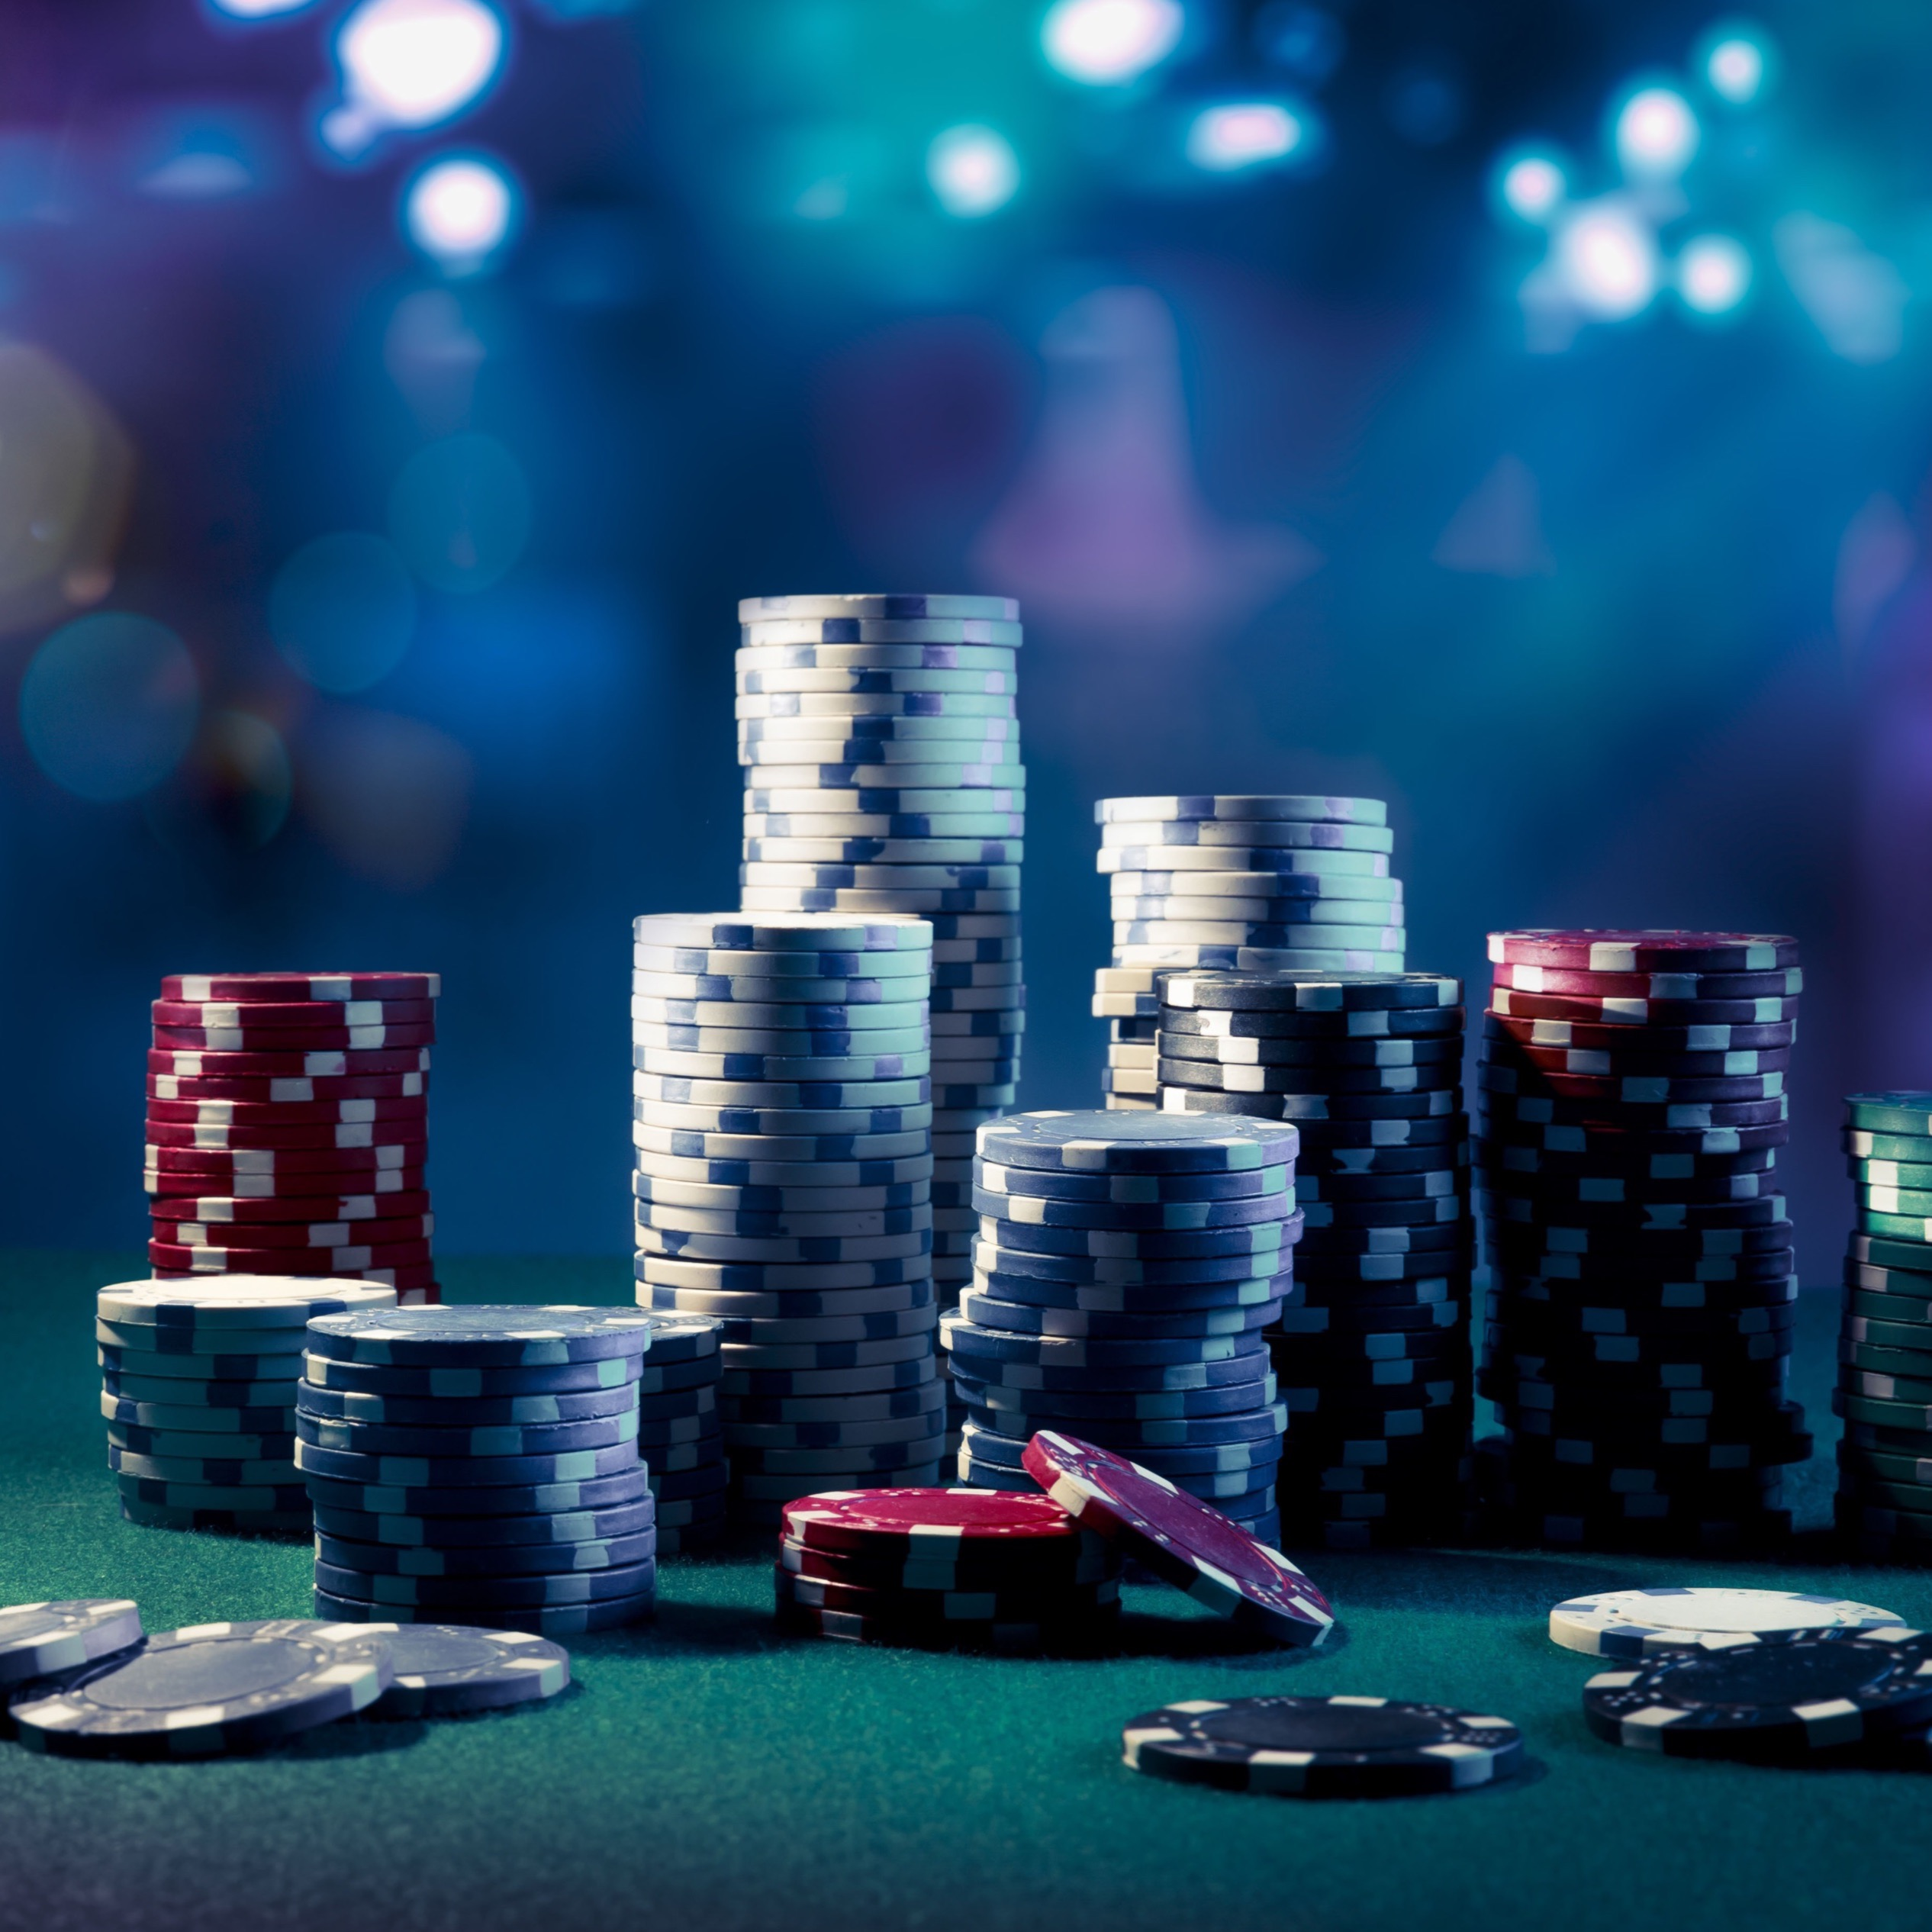 How to Stage an Intervention for a Loved One with a Gambling Problem | News | USC Social Work